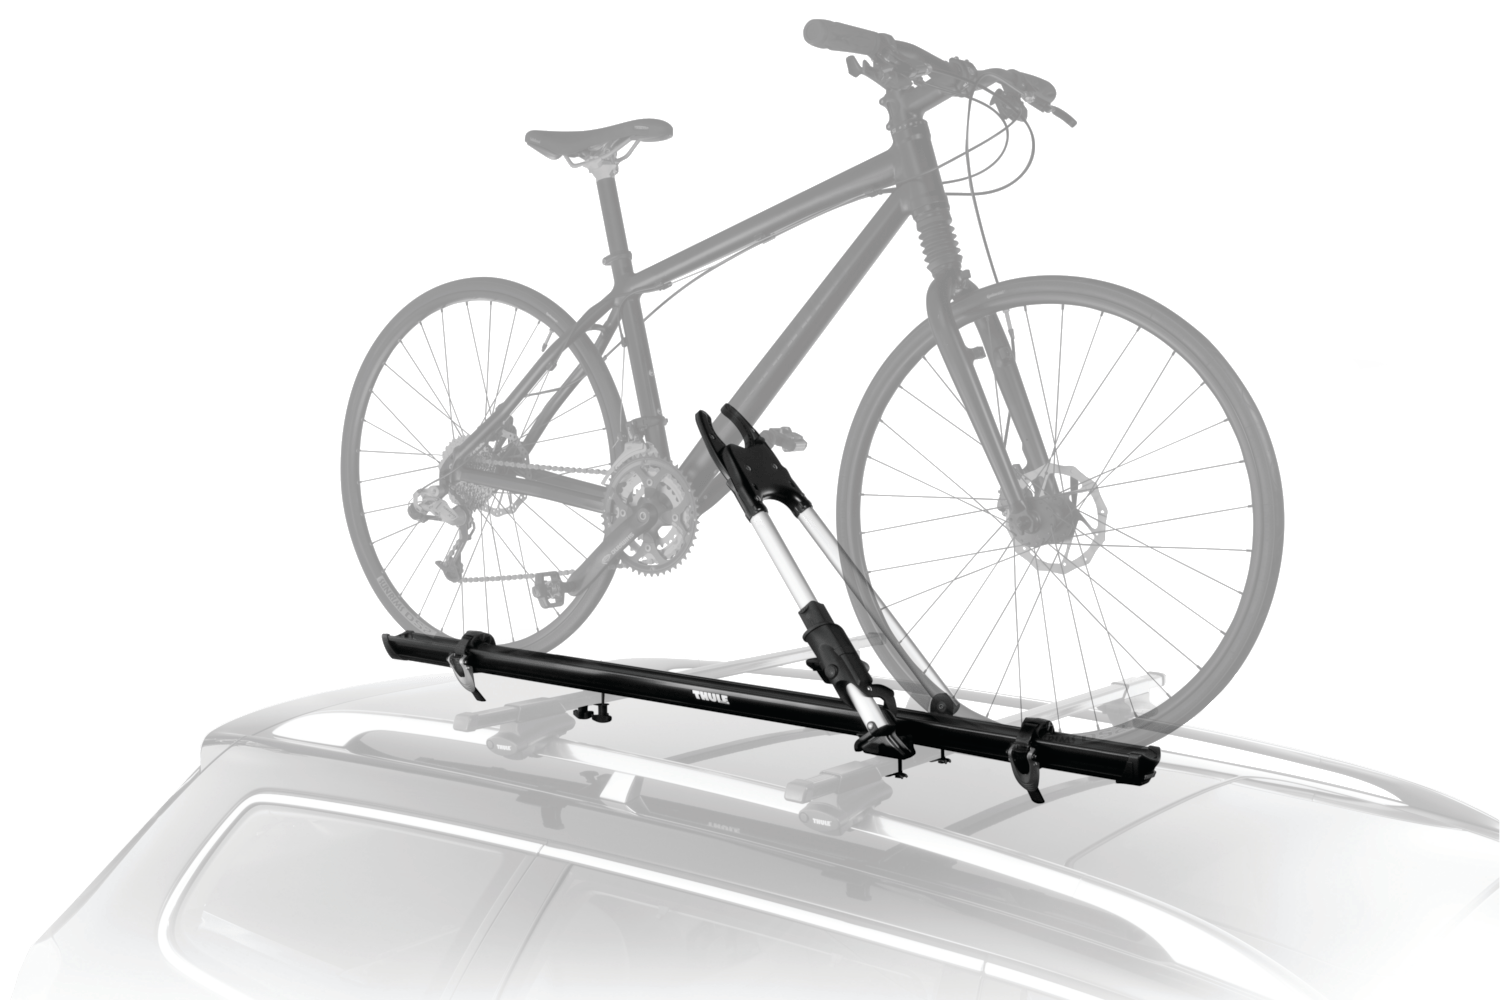 thule bike racks, thule bike rack, thule roof rack bike rack, thule roof bike rack, thule big mouth